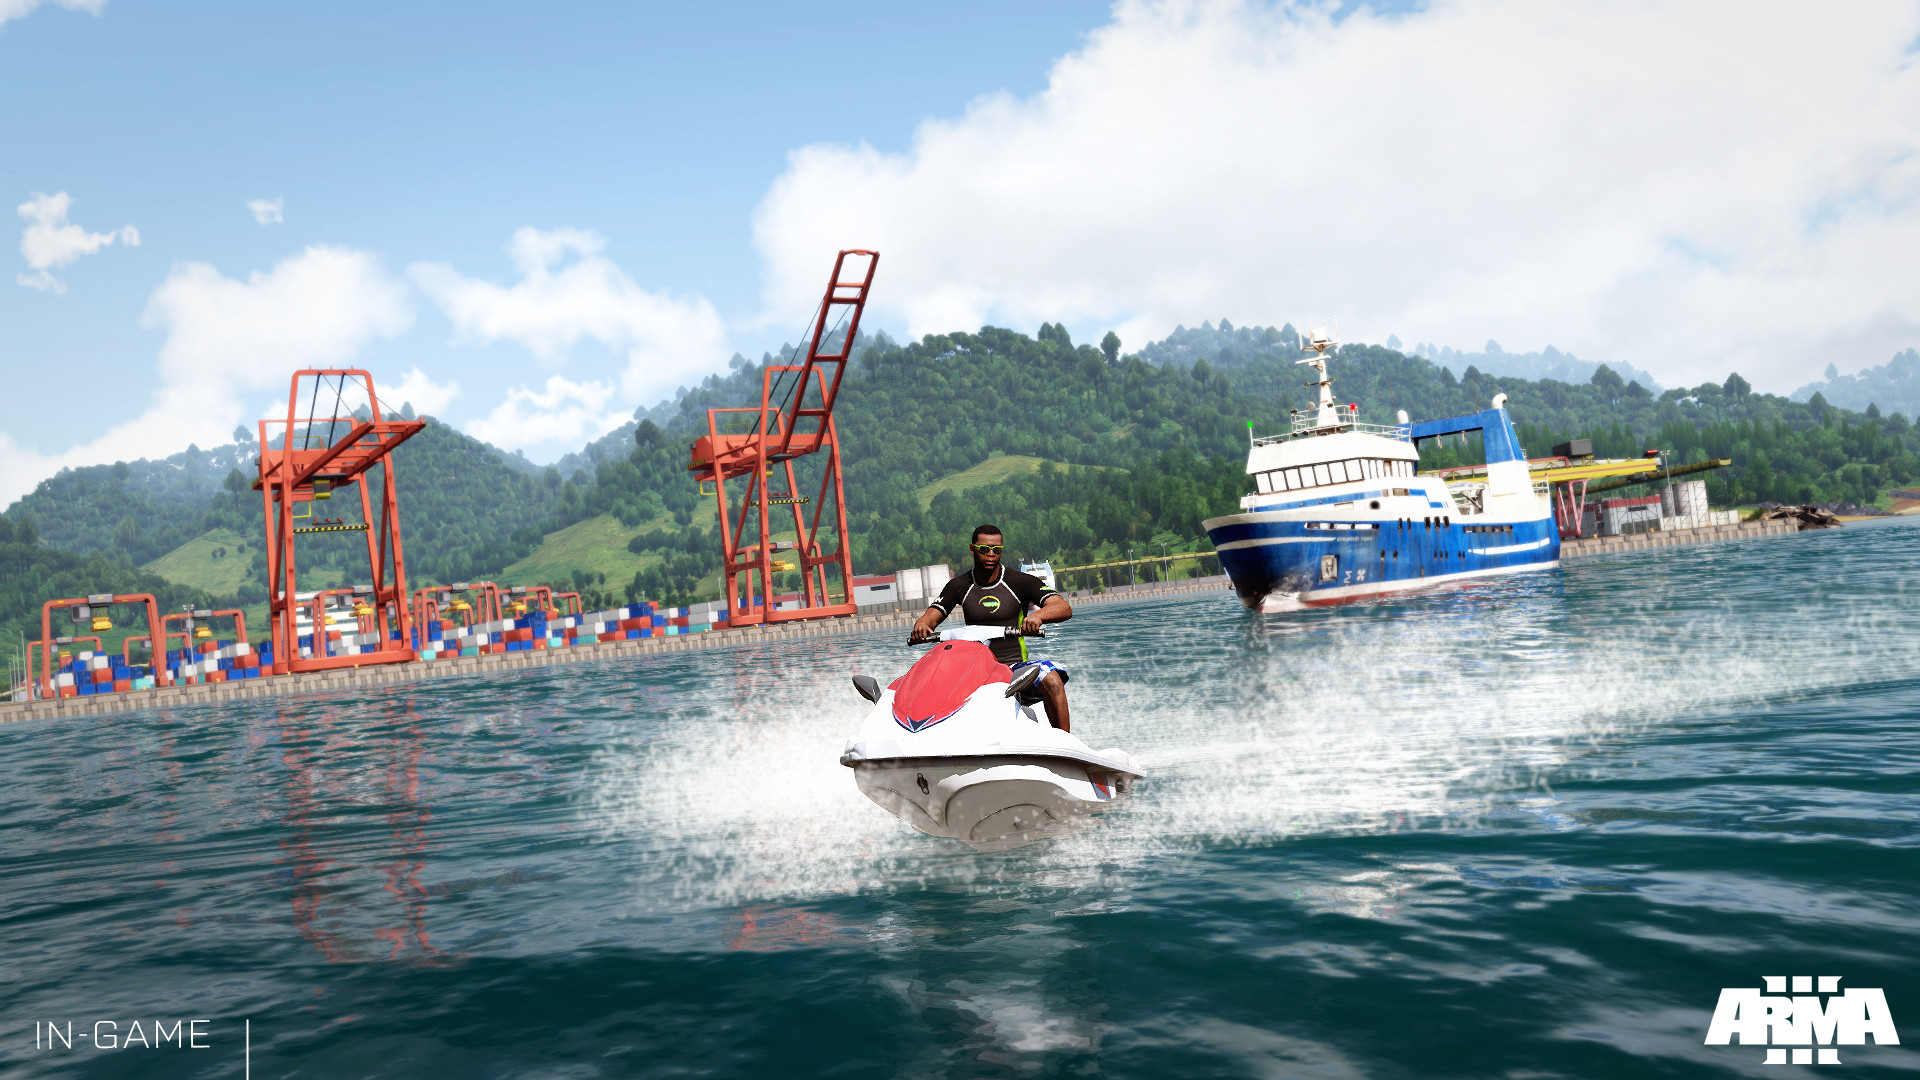 Tanoa terrain coming to Arma 3 in 2016, here's the first trailer